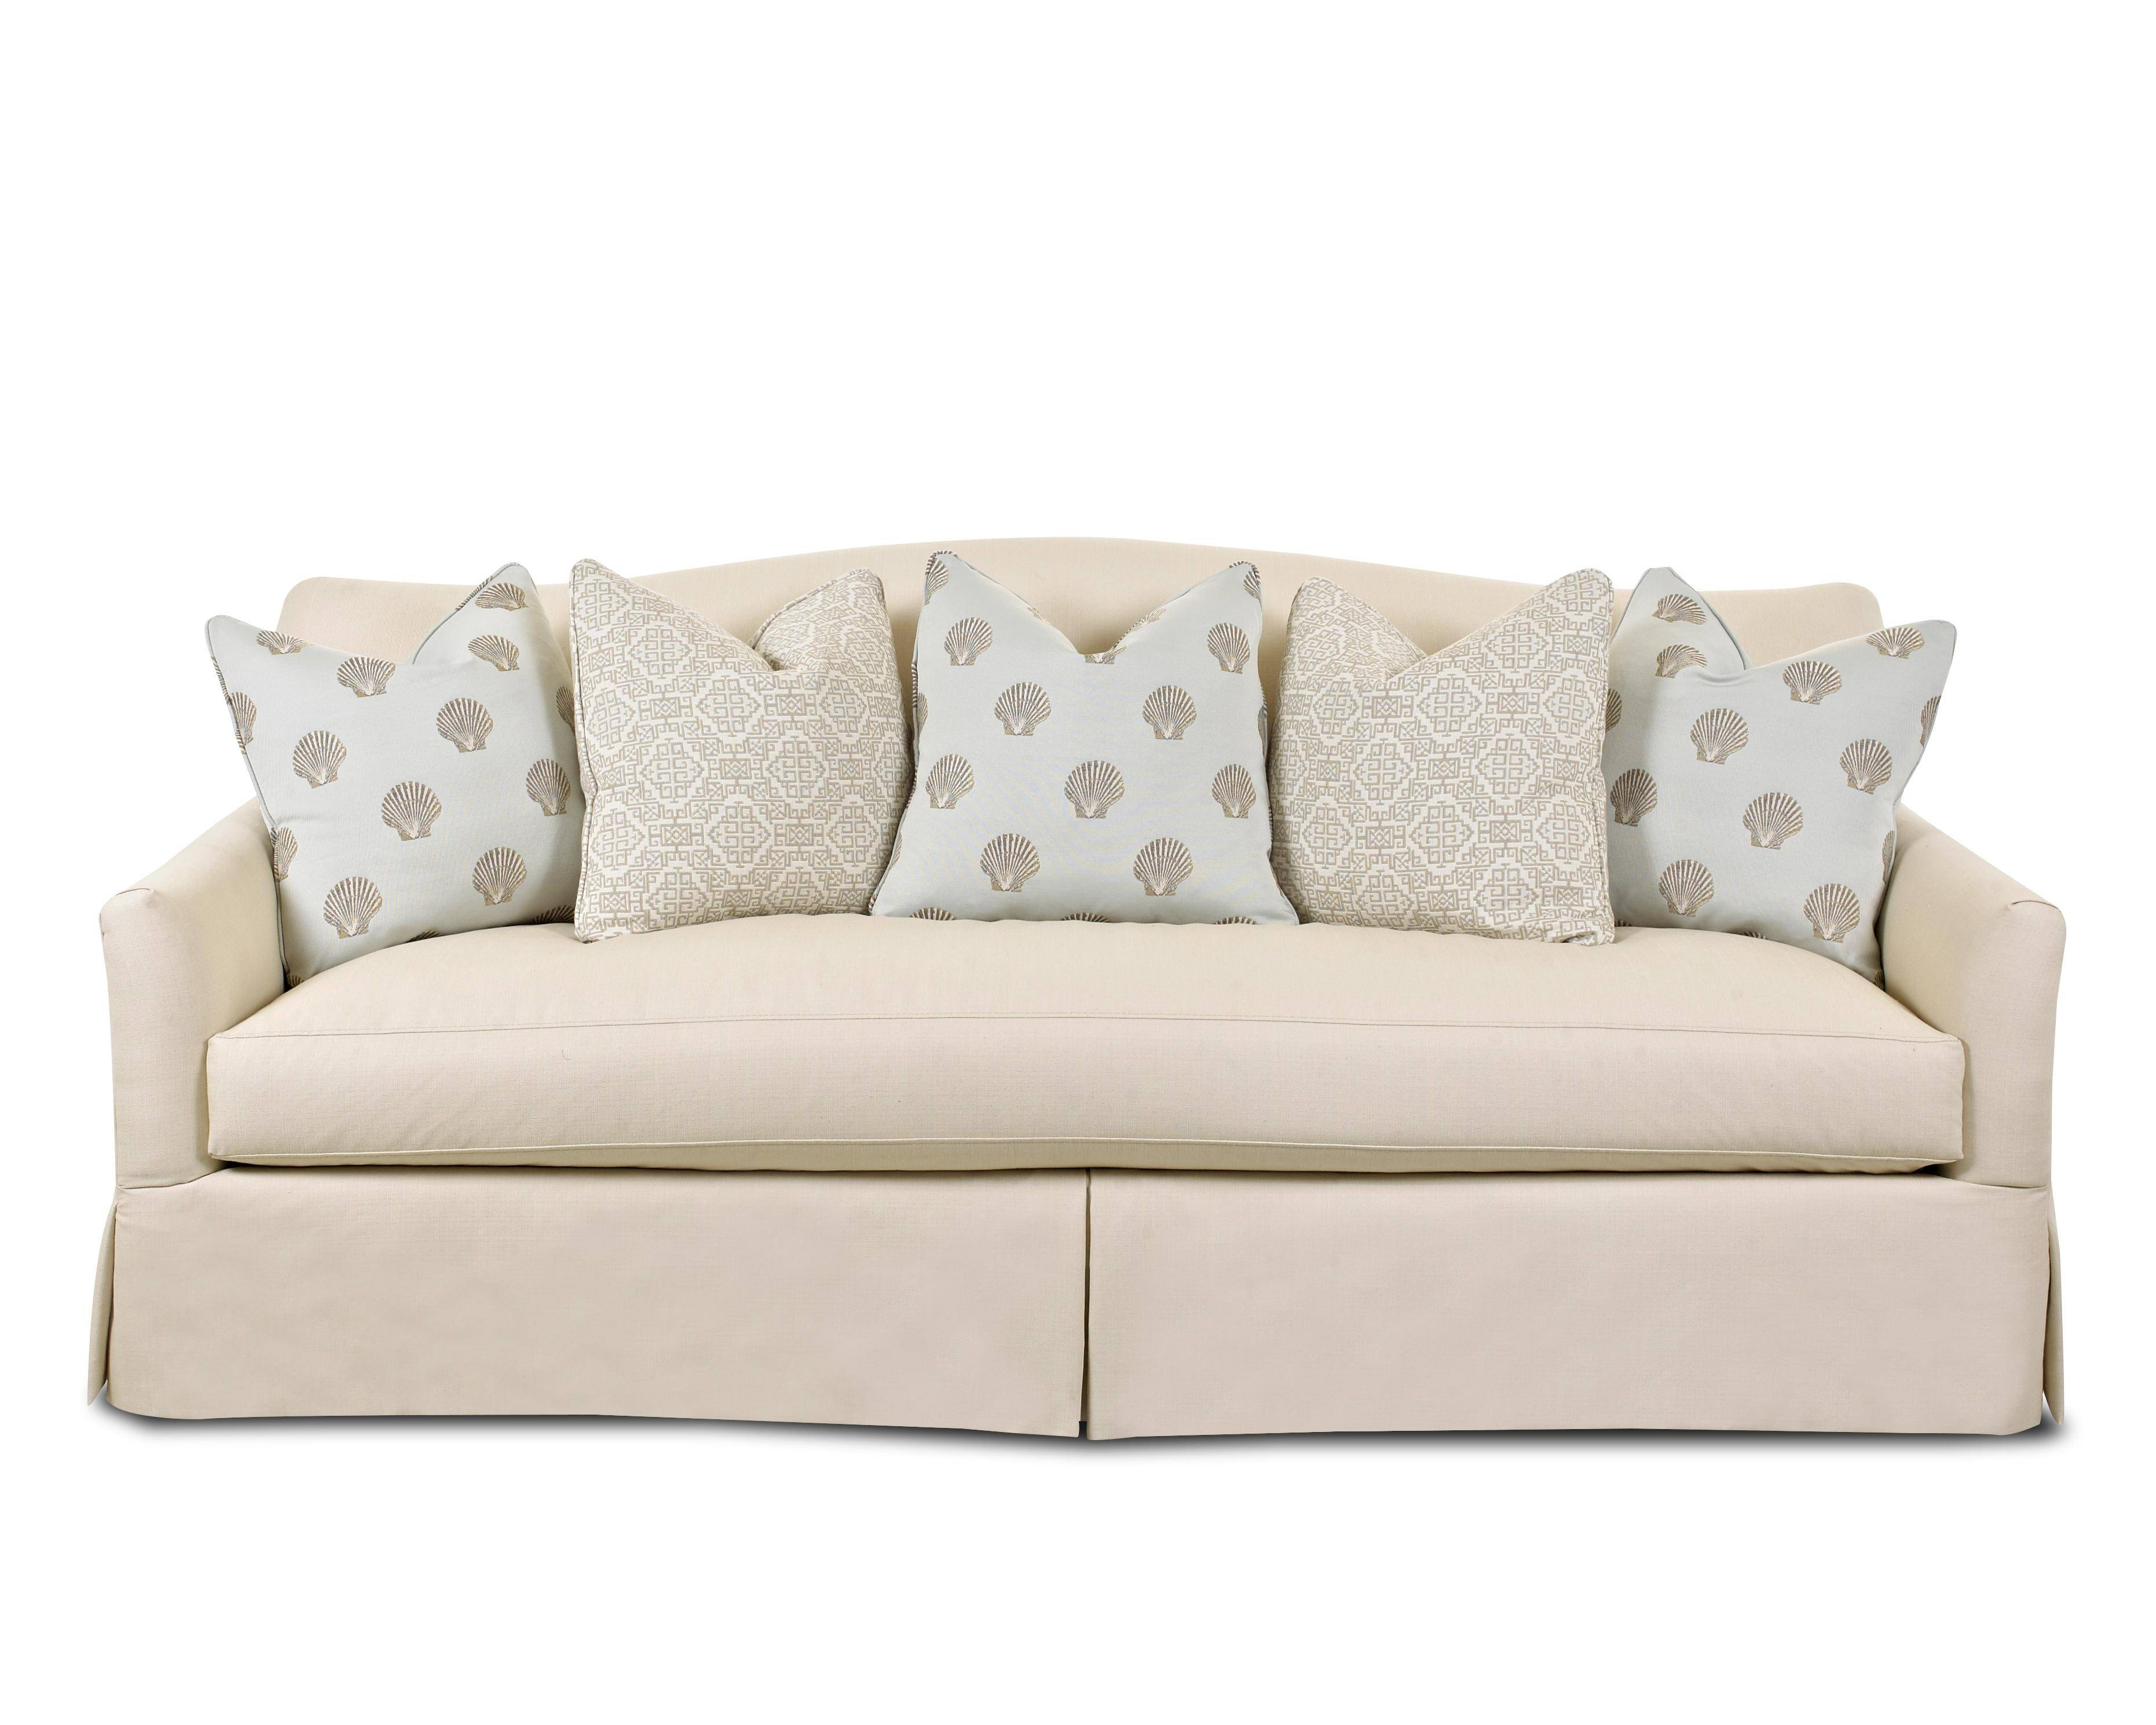 Transitional Stationary Sofa With Bench Seat Cushion, Camel Back throughout Bench Cushion Sofas (Image 13 of 15)